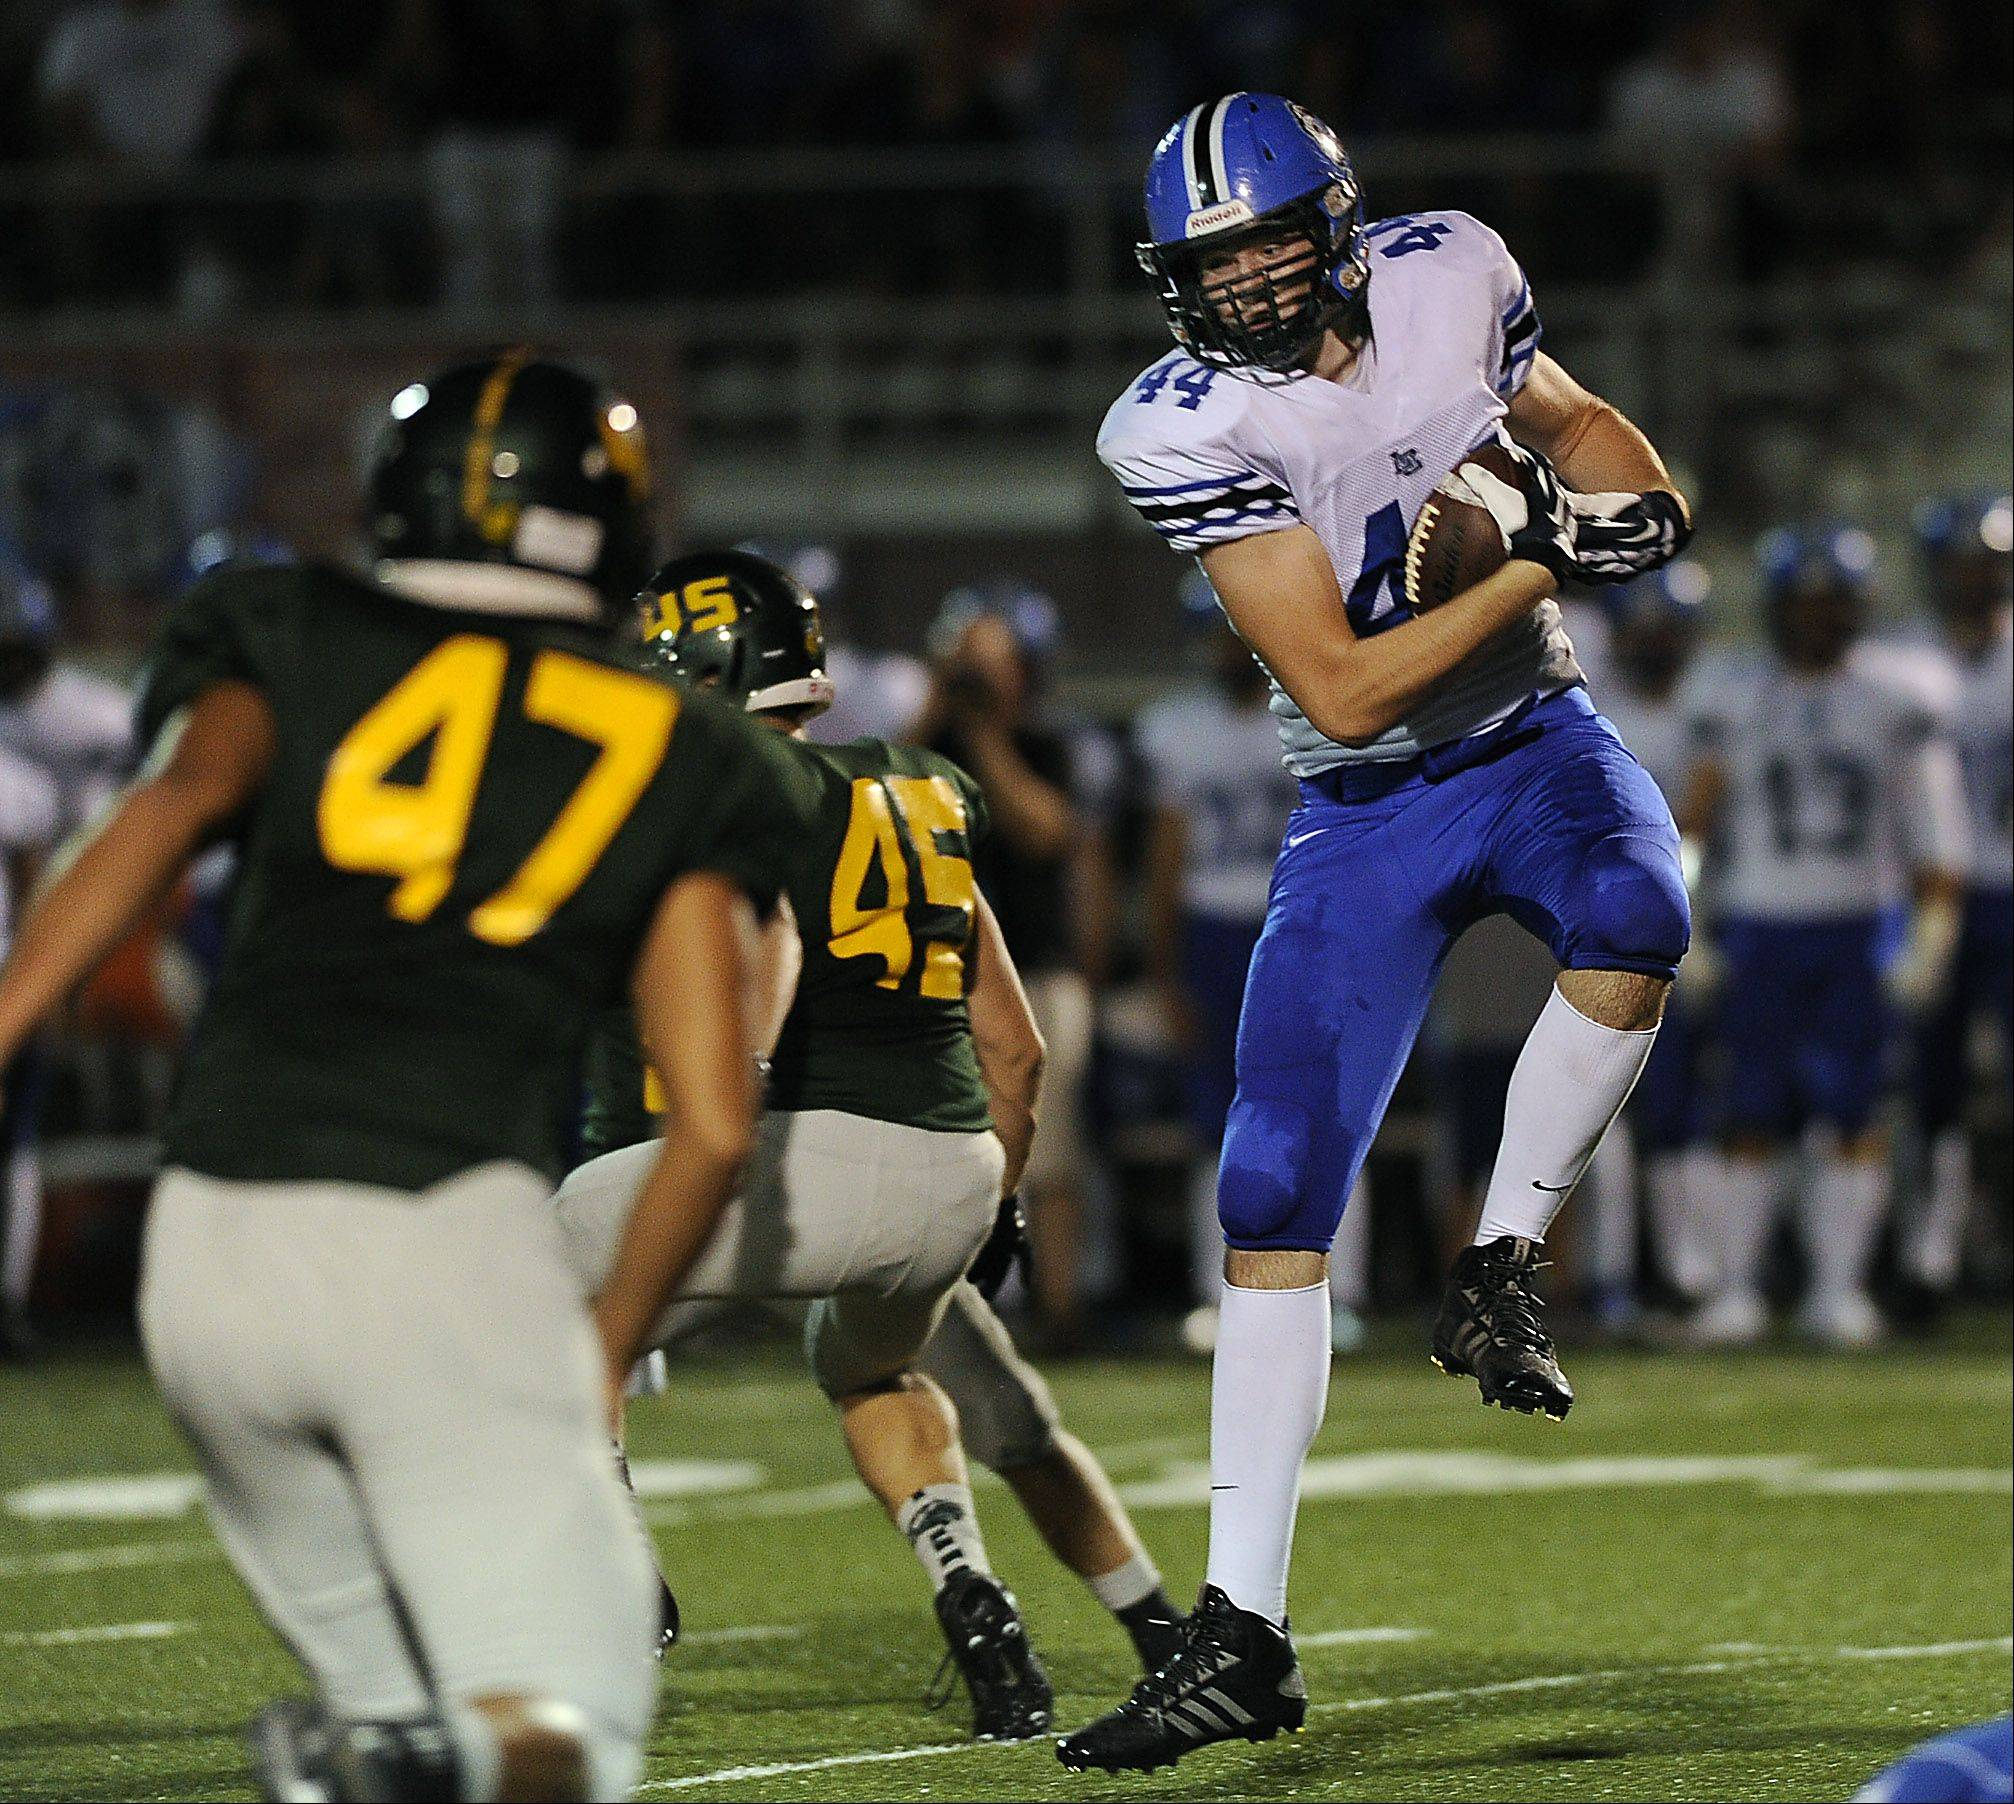 Lake Zurich's Zach Wallace hauls in a pass against Fremd.